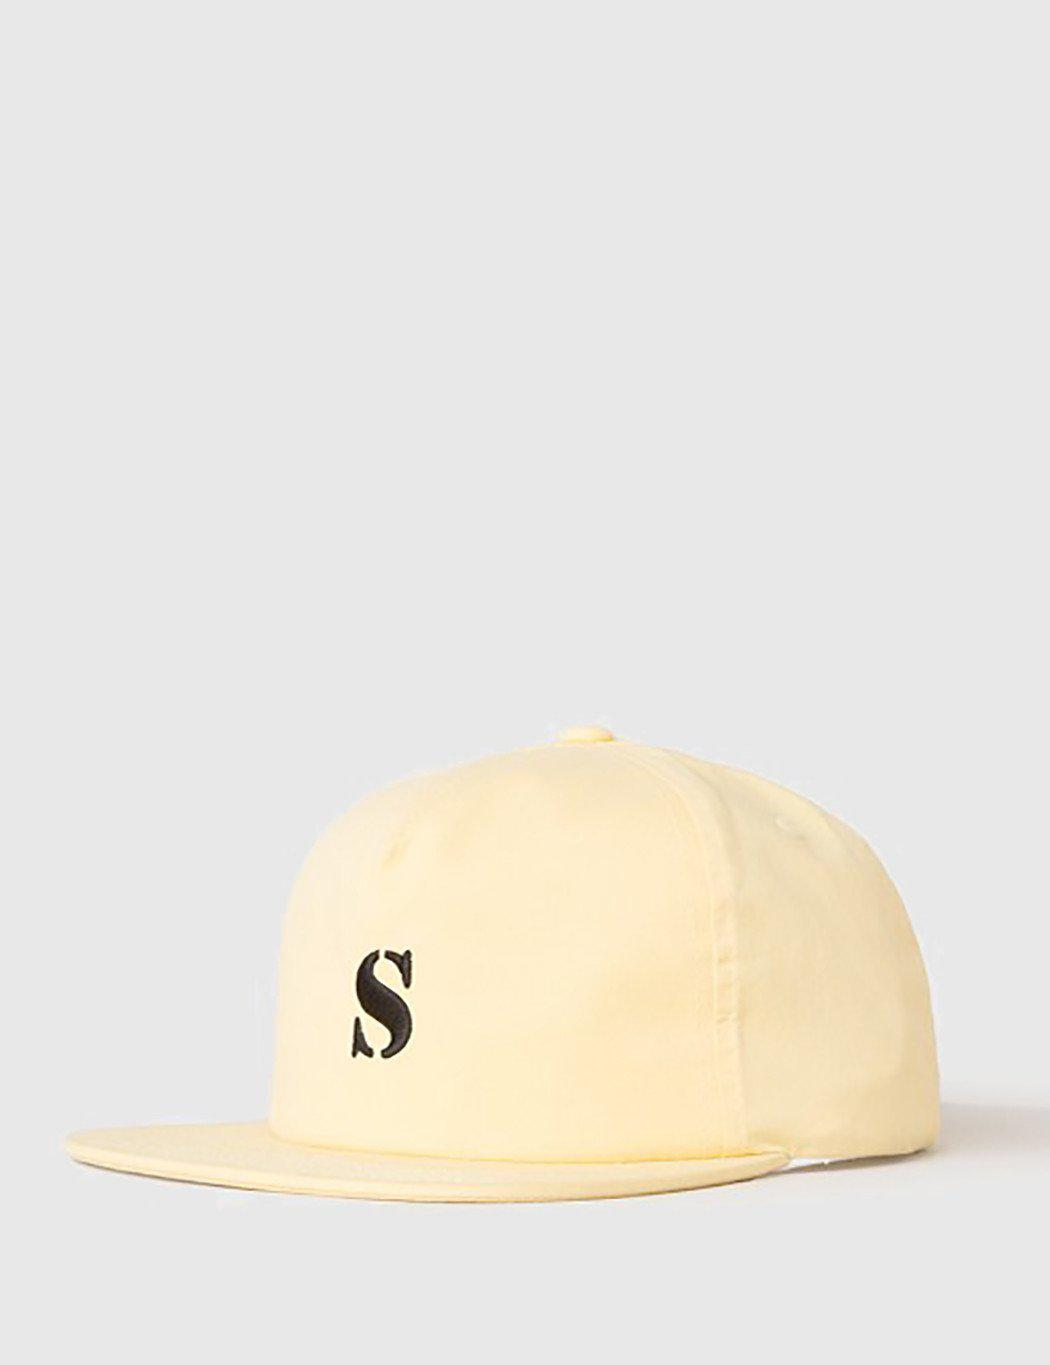 5ff4de64297cf Lyst - Stussy Bio Washed Cap in Yellow for Men